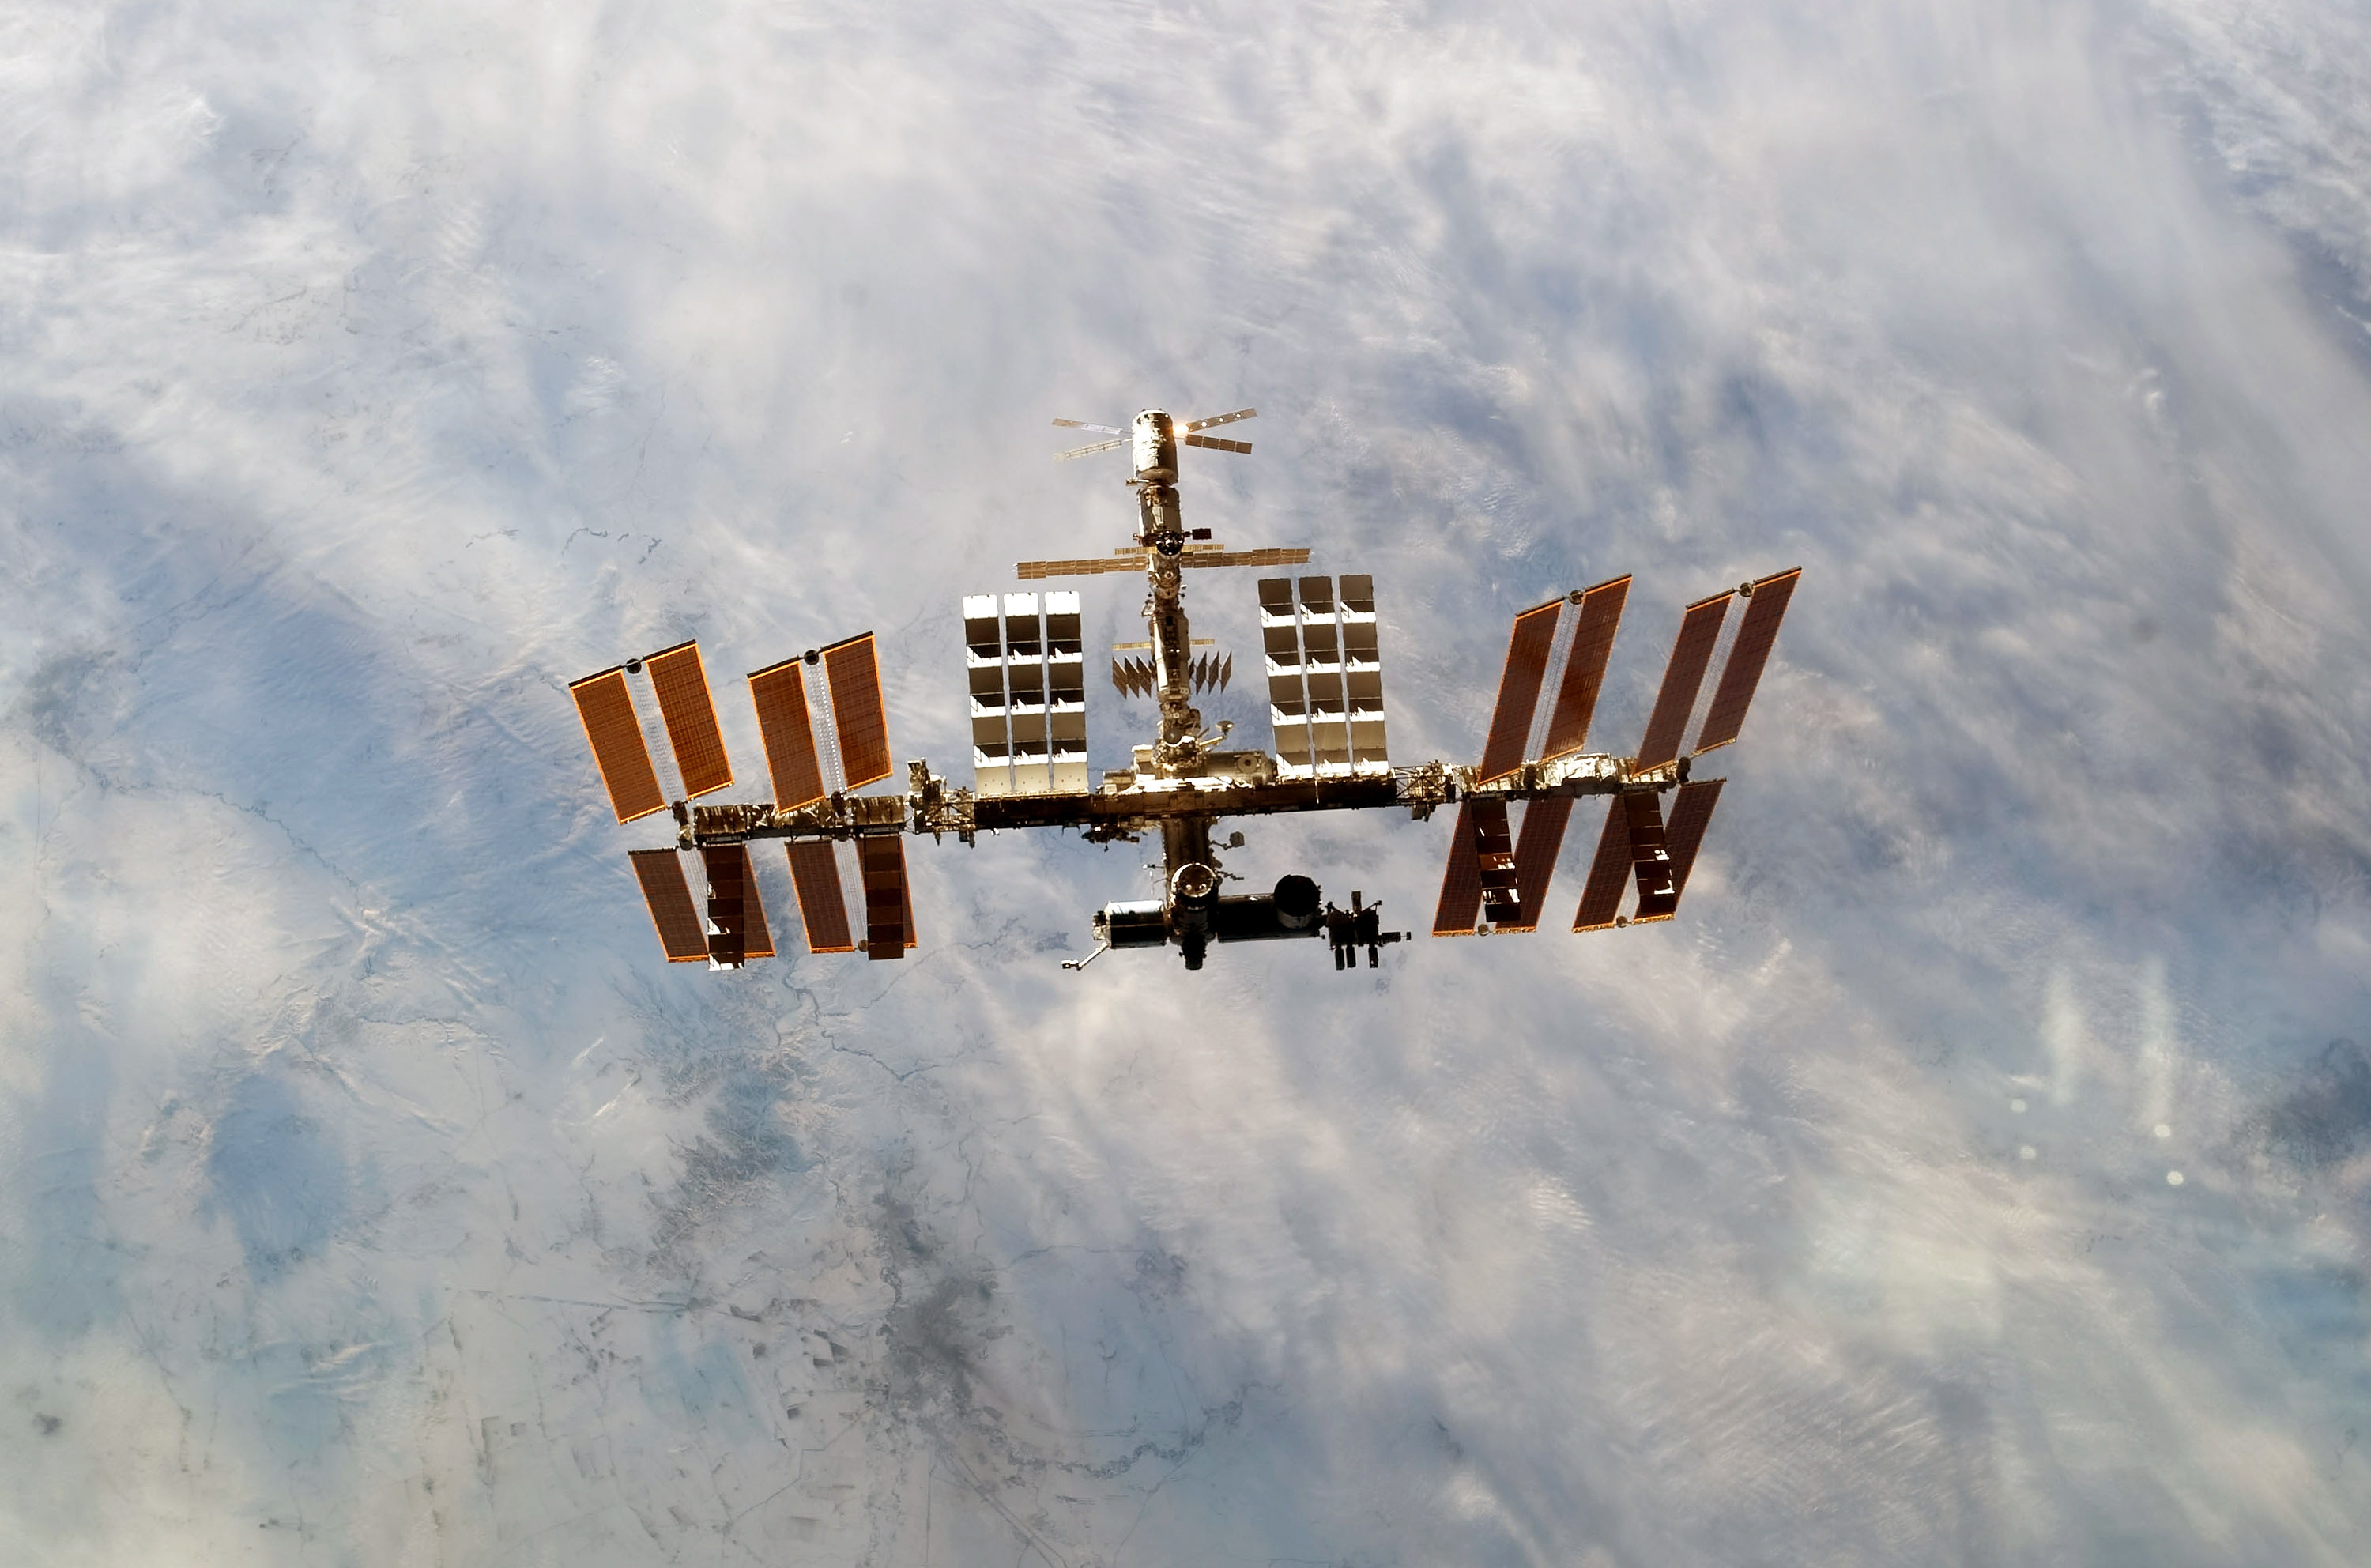 The International Space Station is seen from the space shuttle Discovery as the two orbital spacecraft accomplish their relative separation after an aggregate of 12 astronauts and cosmonauts worked together for over a week during flight day 12 activities on March 7, 2011 in Space.